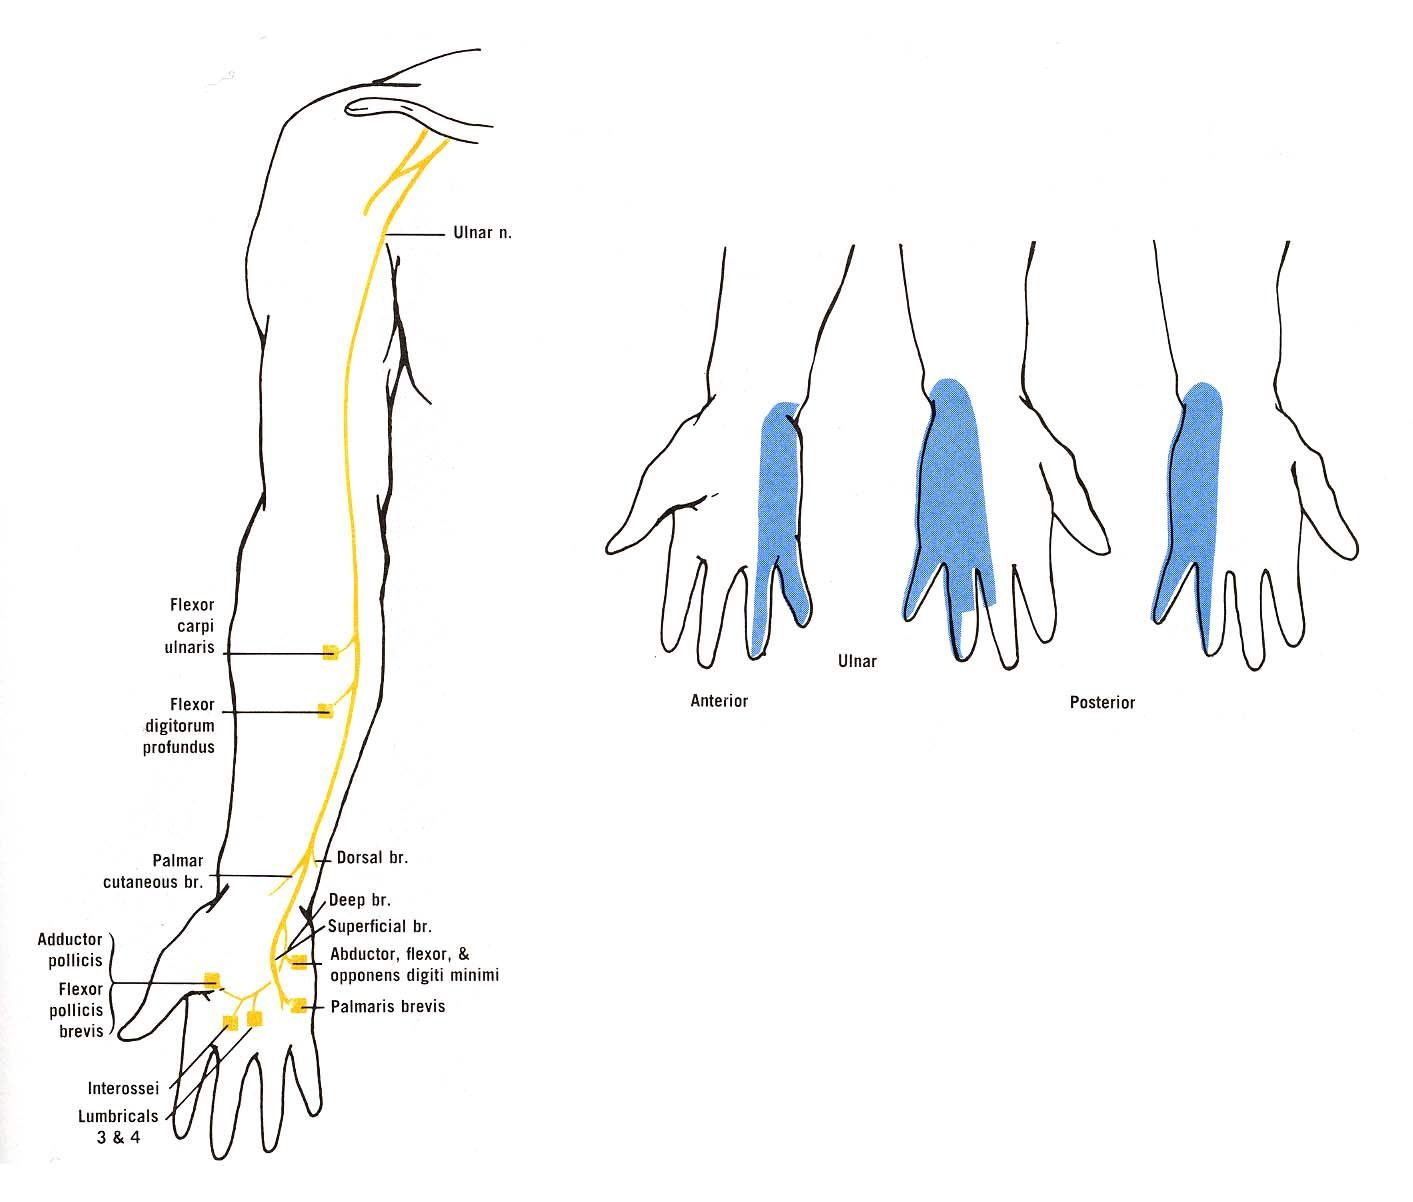 Anatomy Angel Grip Issues And Nerve Impingement Dr Dooley Noted